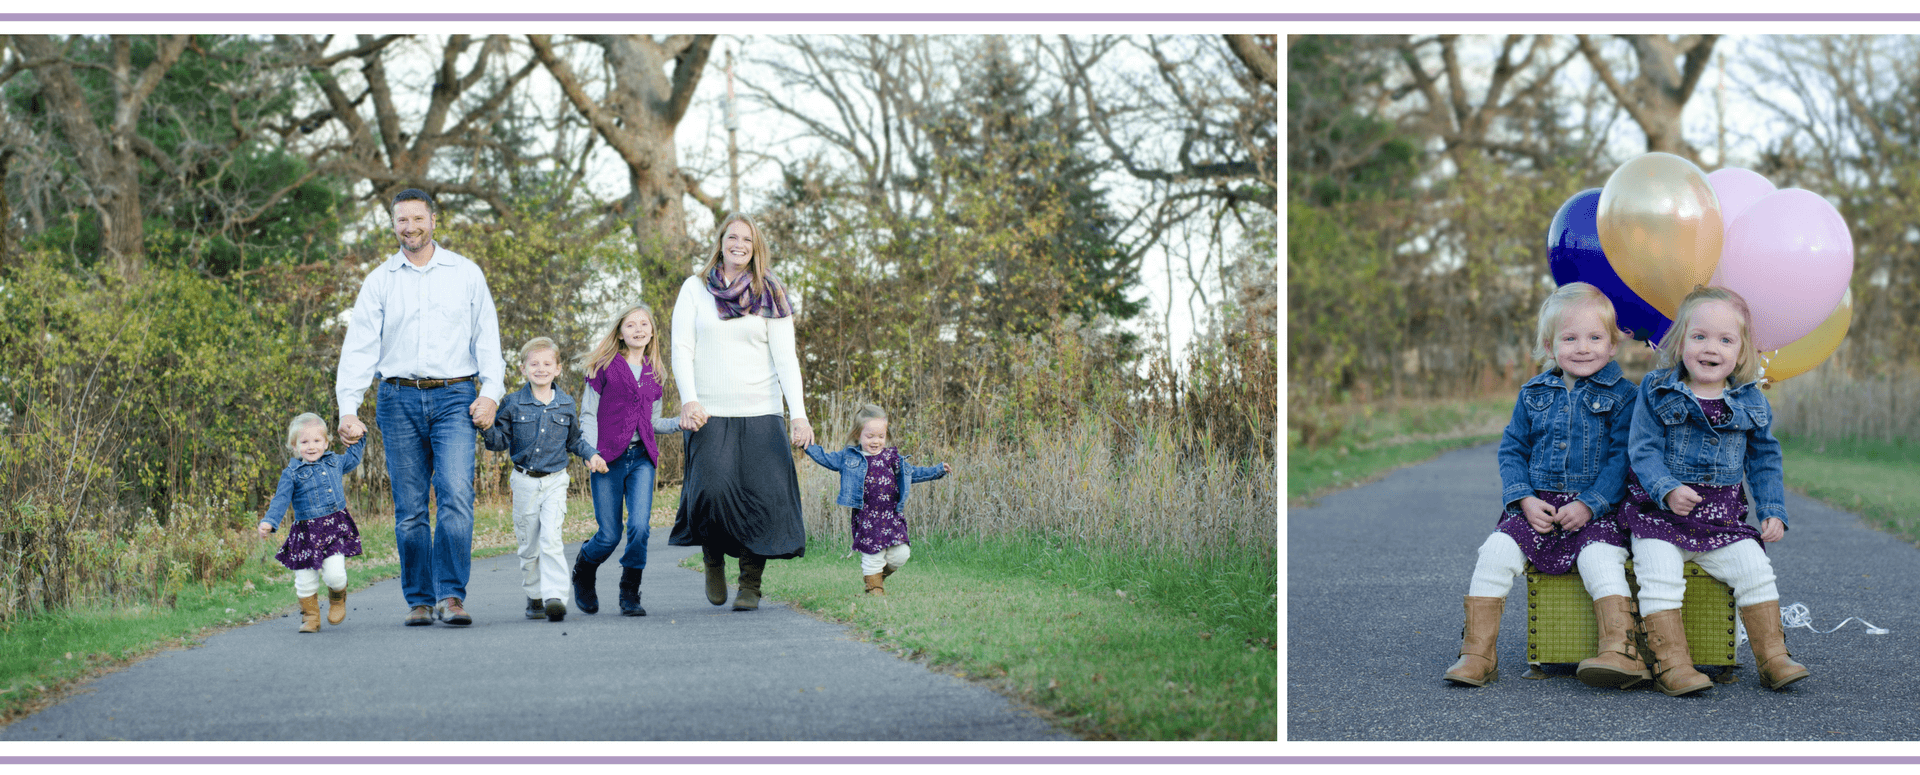 Woodbury MN Photographer | Family Photographer | Focus Photography of Minnesota